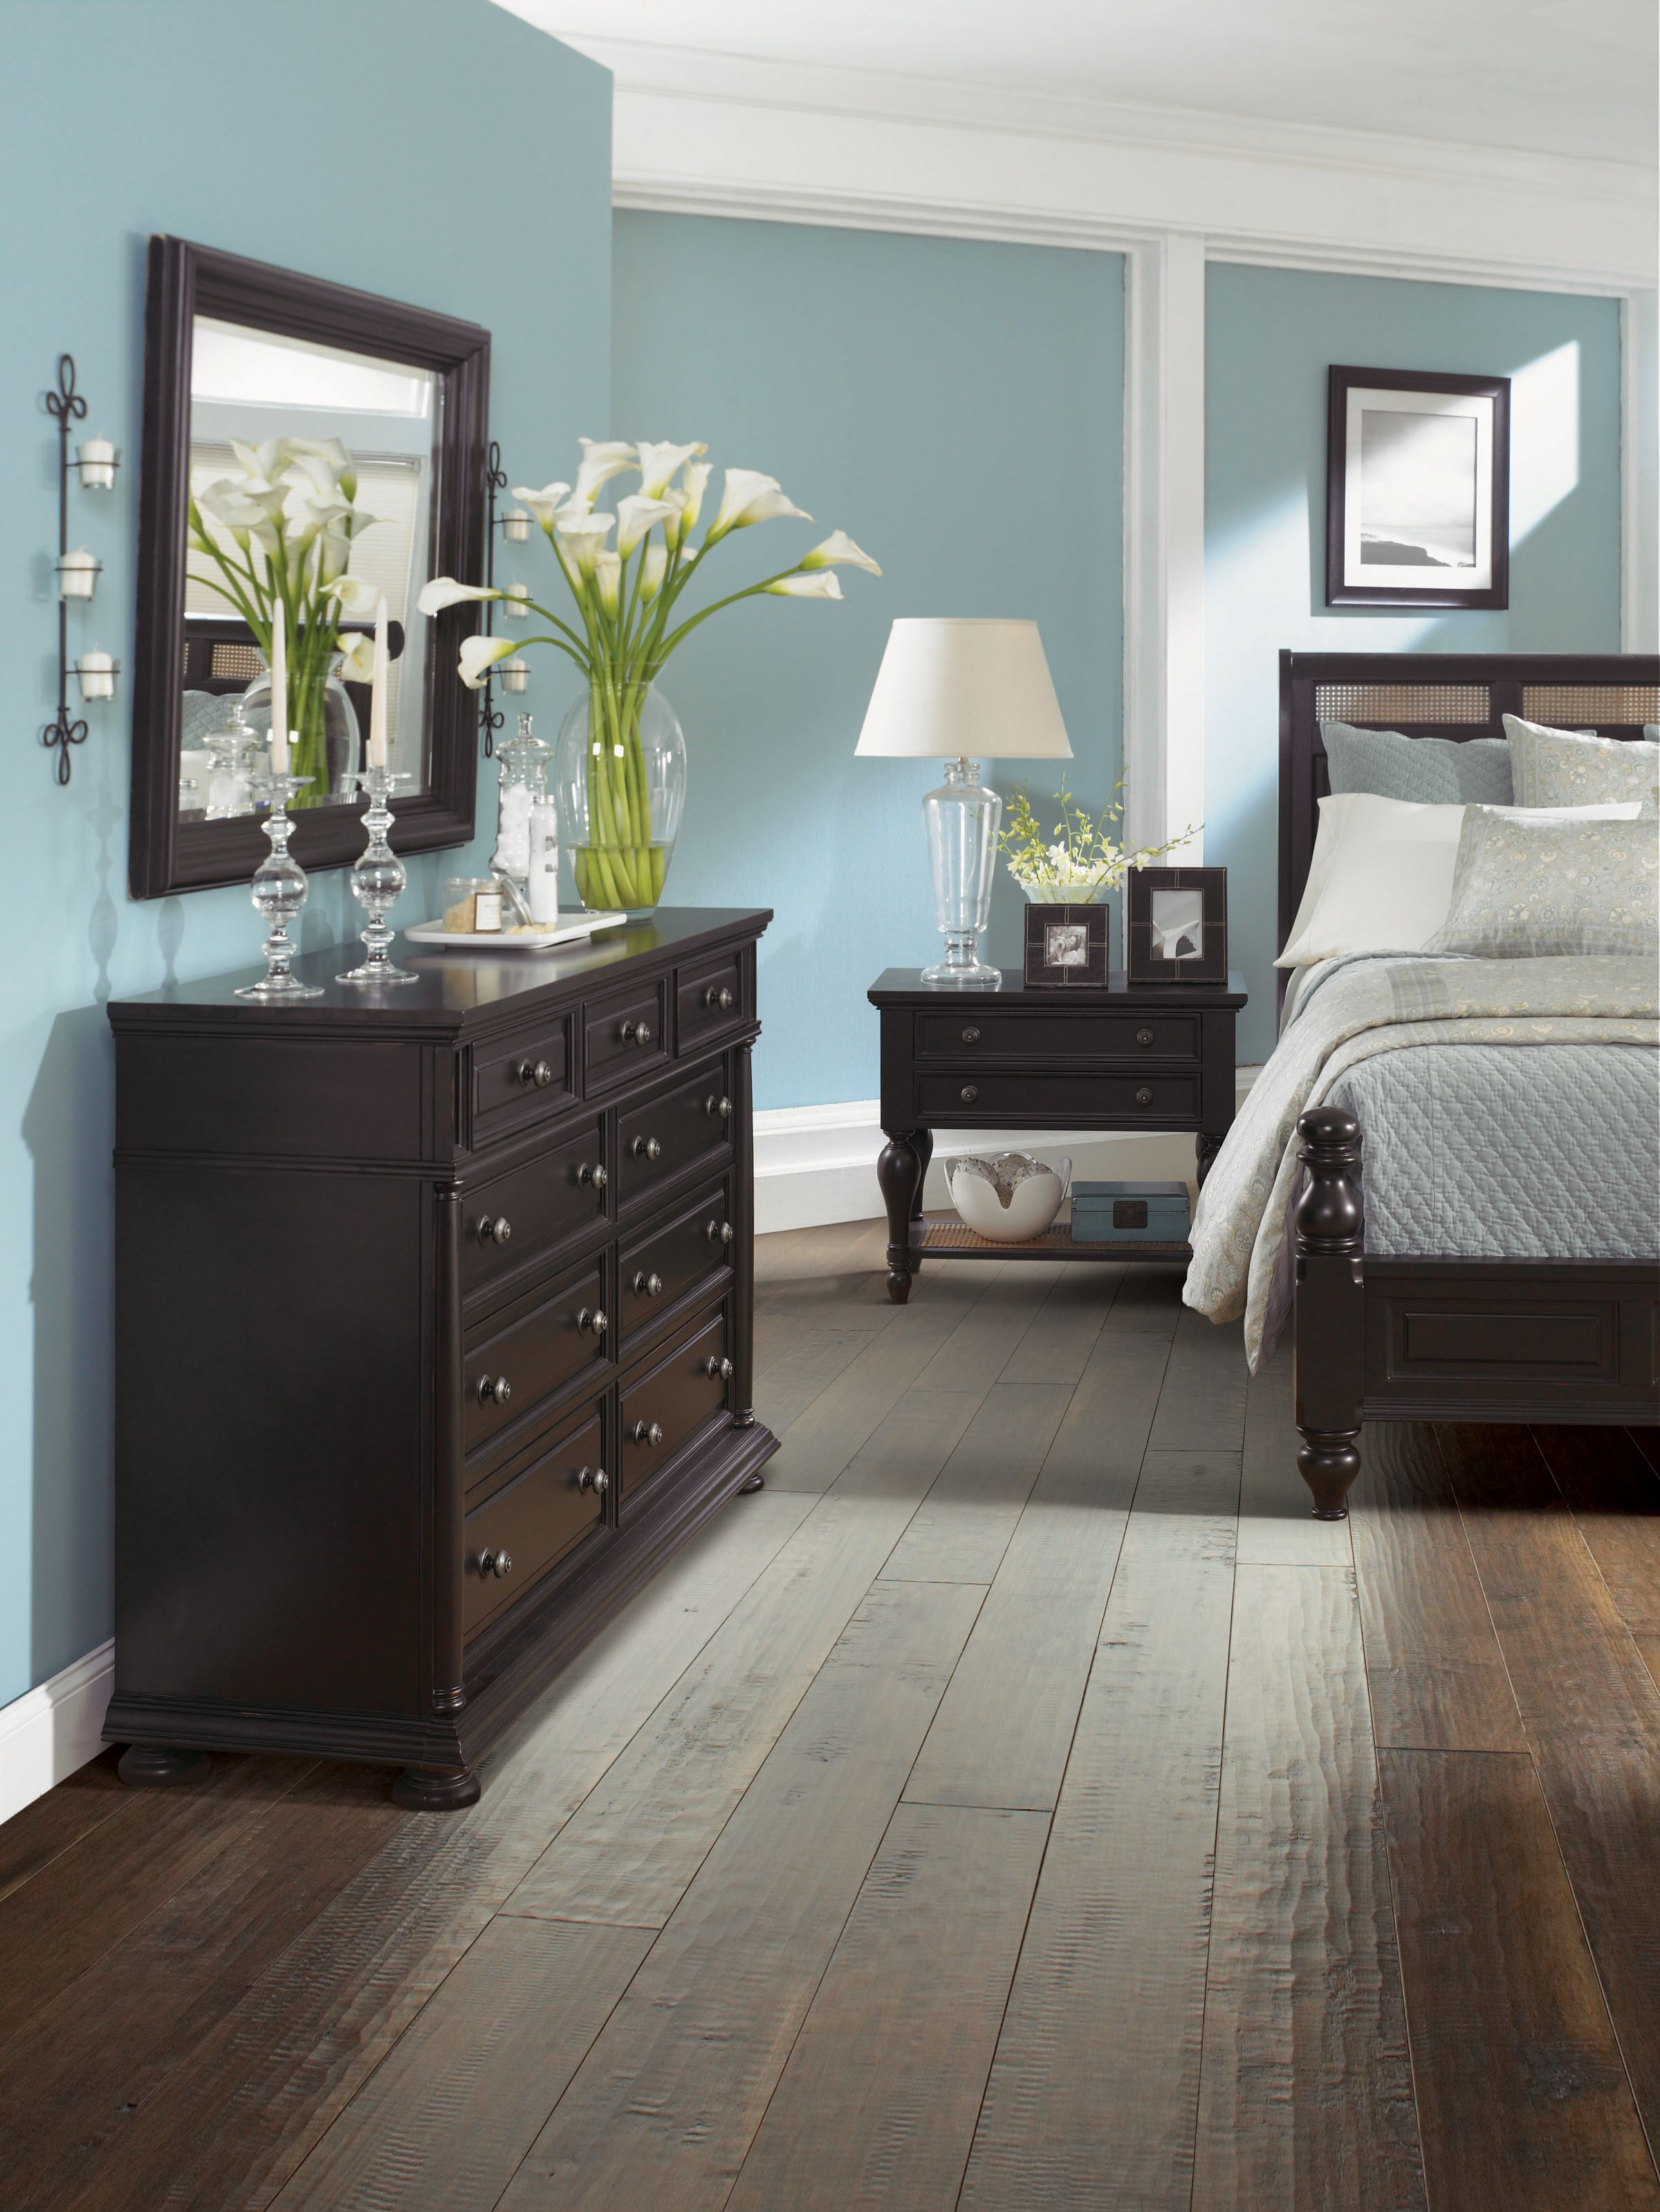 30+ Wood Flooring Ideas and Trends for Your Stunning Bedroom | Black Bedroom Decorating Ideas With Dark Wood Furniture on bedroom dressers with mirrors, bedroom dresser top decor, solid cherry wood furniture, dark wood floor living room furniture, bedroom design ideas, espresso dressers furniture, espresso color furniture, brown leather living room furniture, master bedroom with dark furniture, refurbished wood furniture, dark chocolate furniture, dark cherry wood furniture,